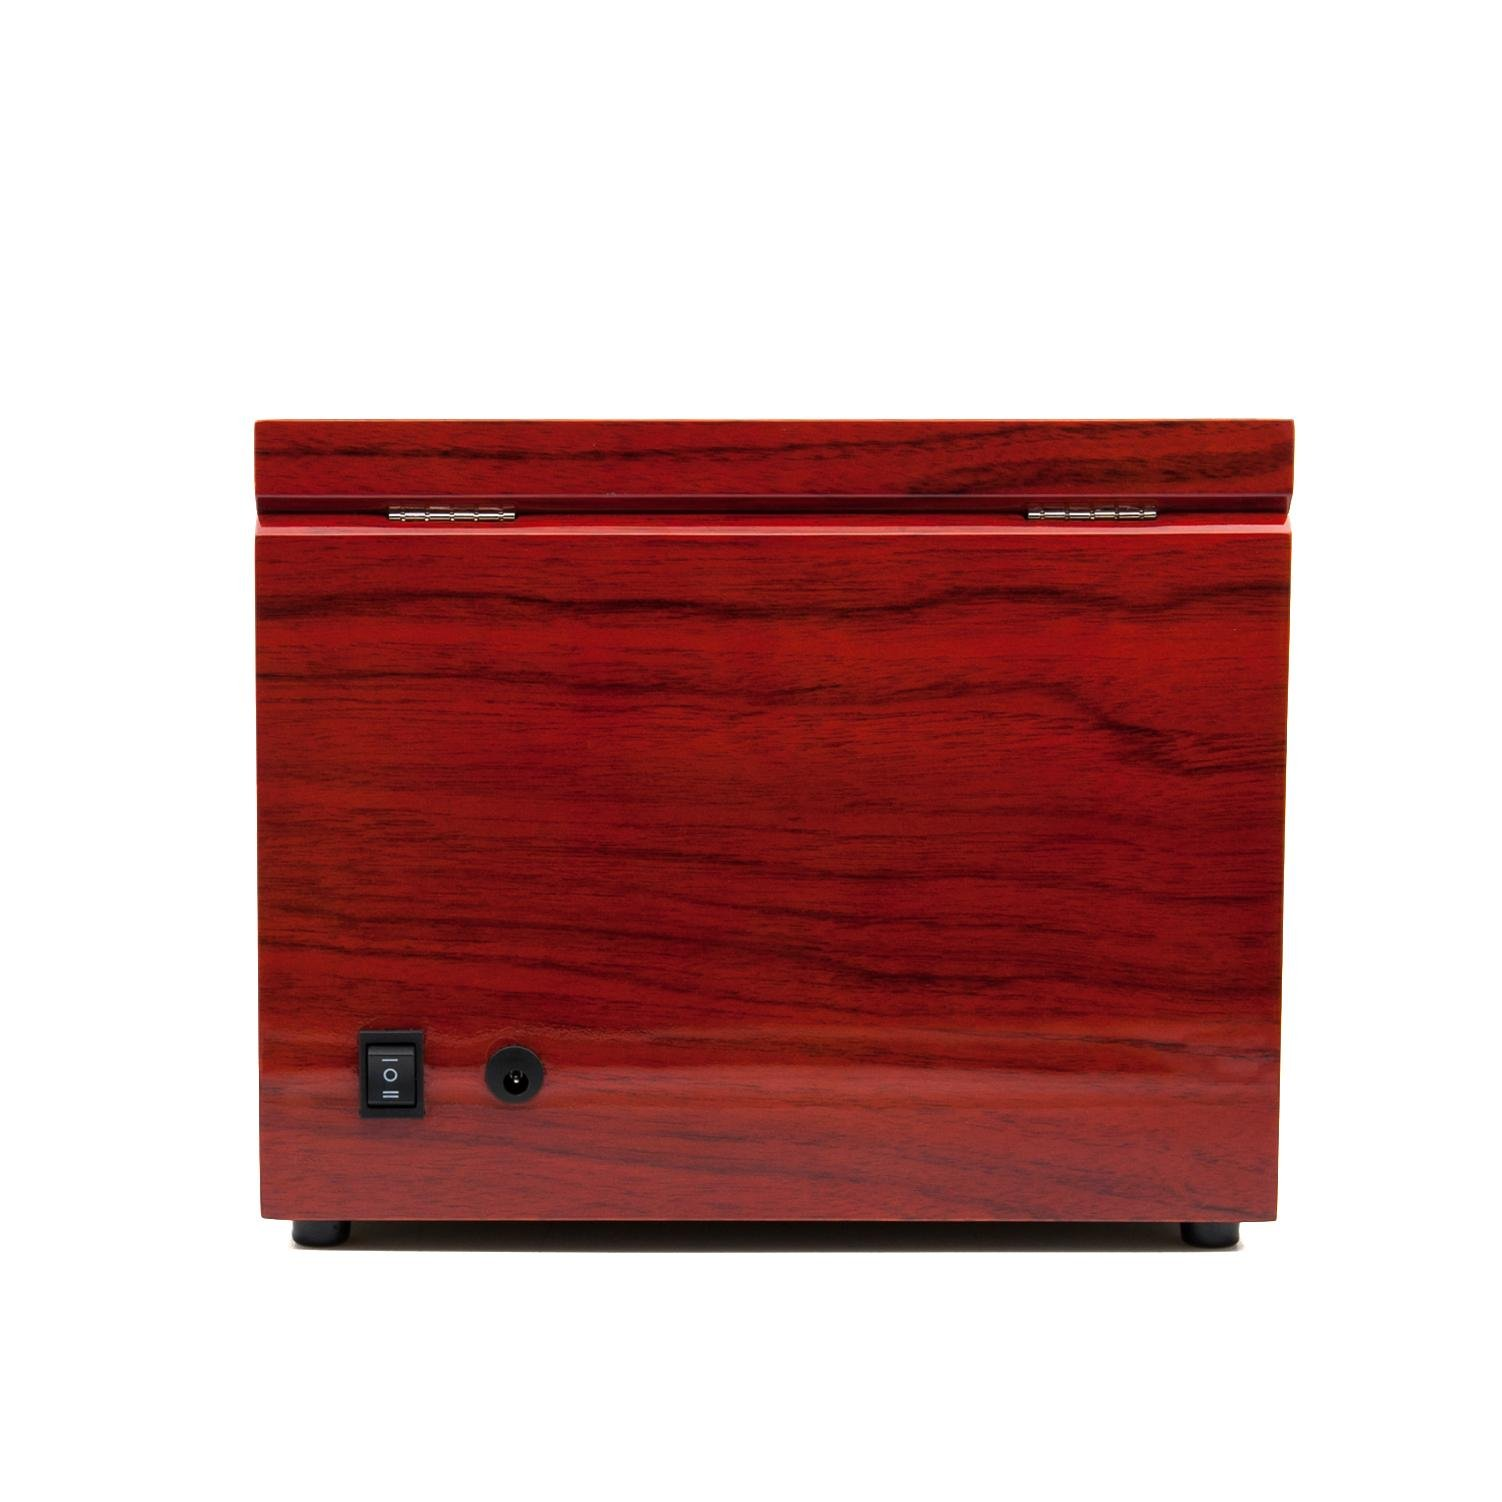 KAIHE-BOX Classic Watch Winders for 2 Watches for automatic Watch Winder Rotator Case Cover Storage(2 color,ww-02132) , Red by KAIHE-BOX (Image #6)